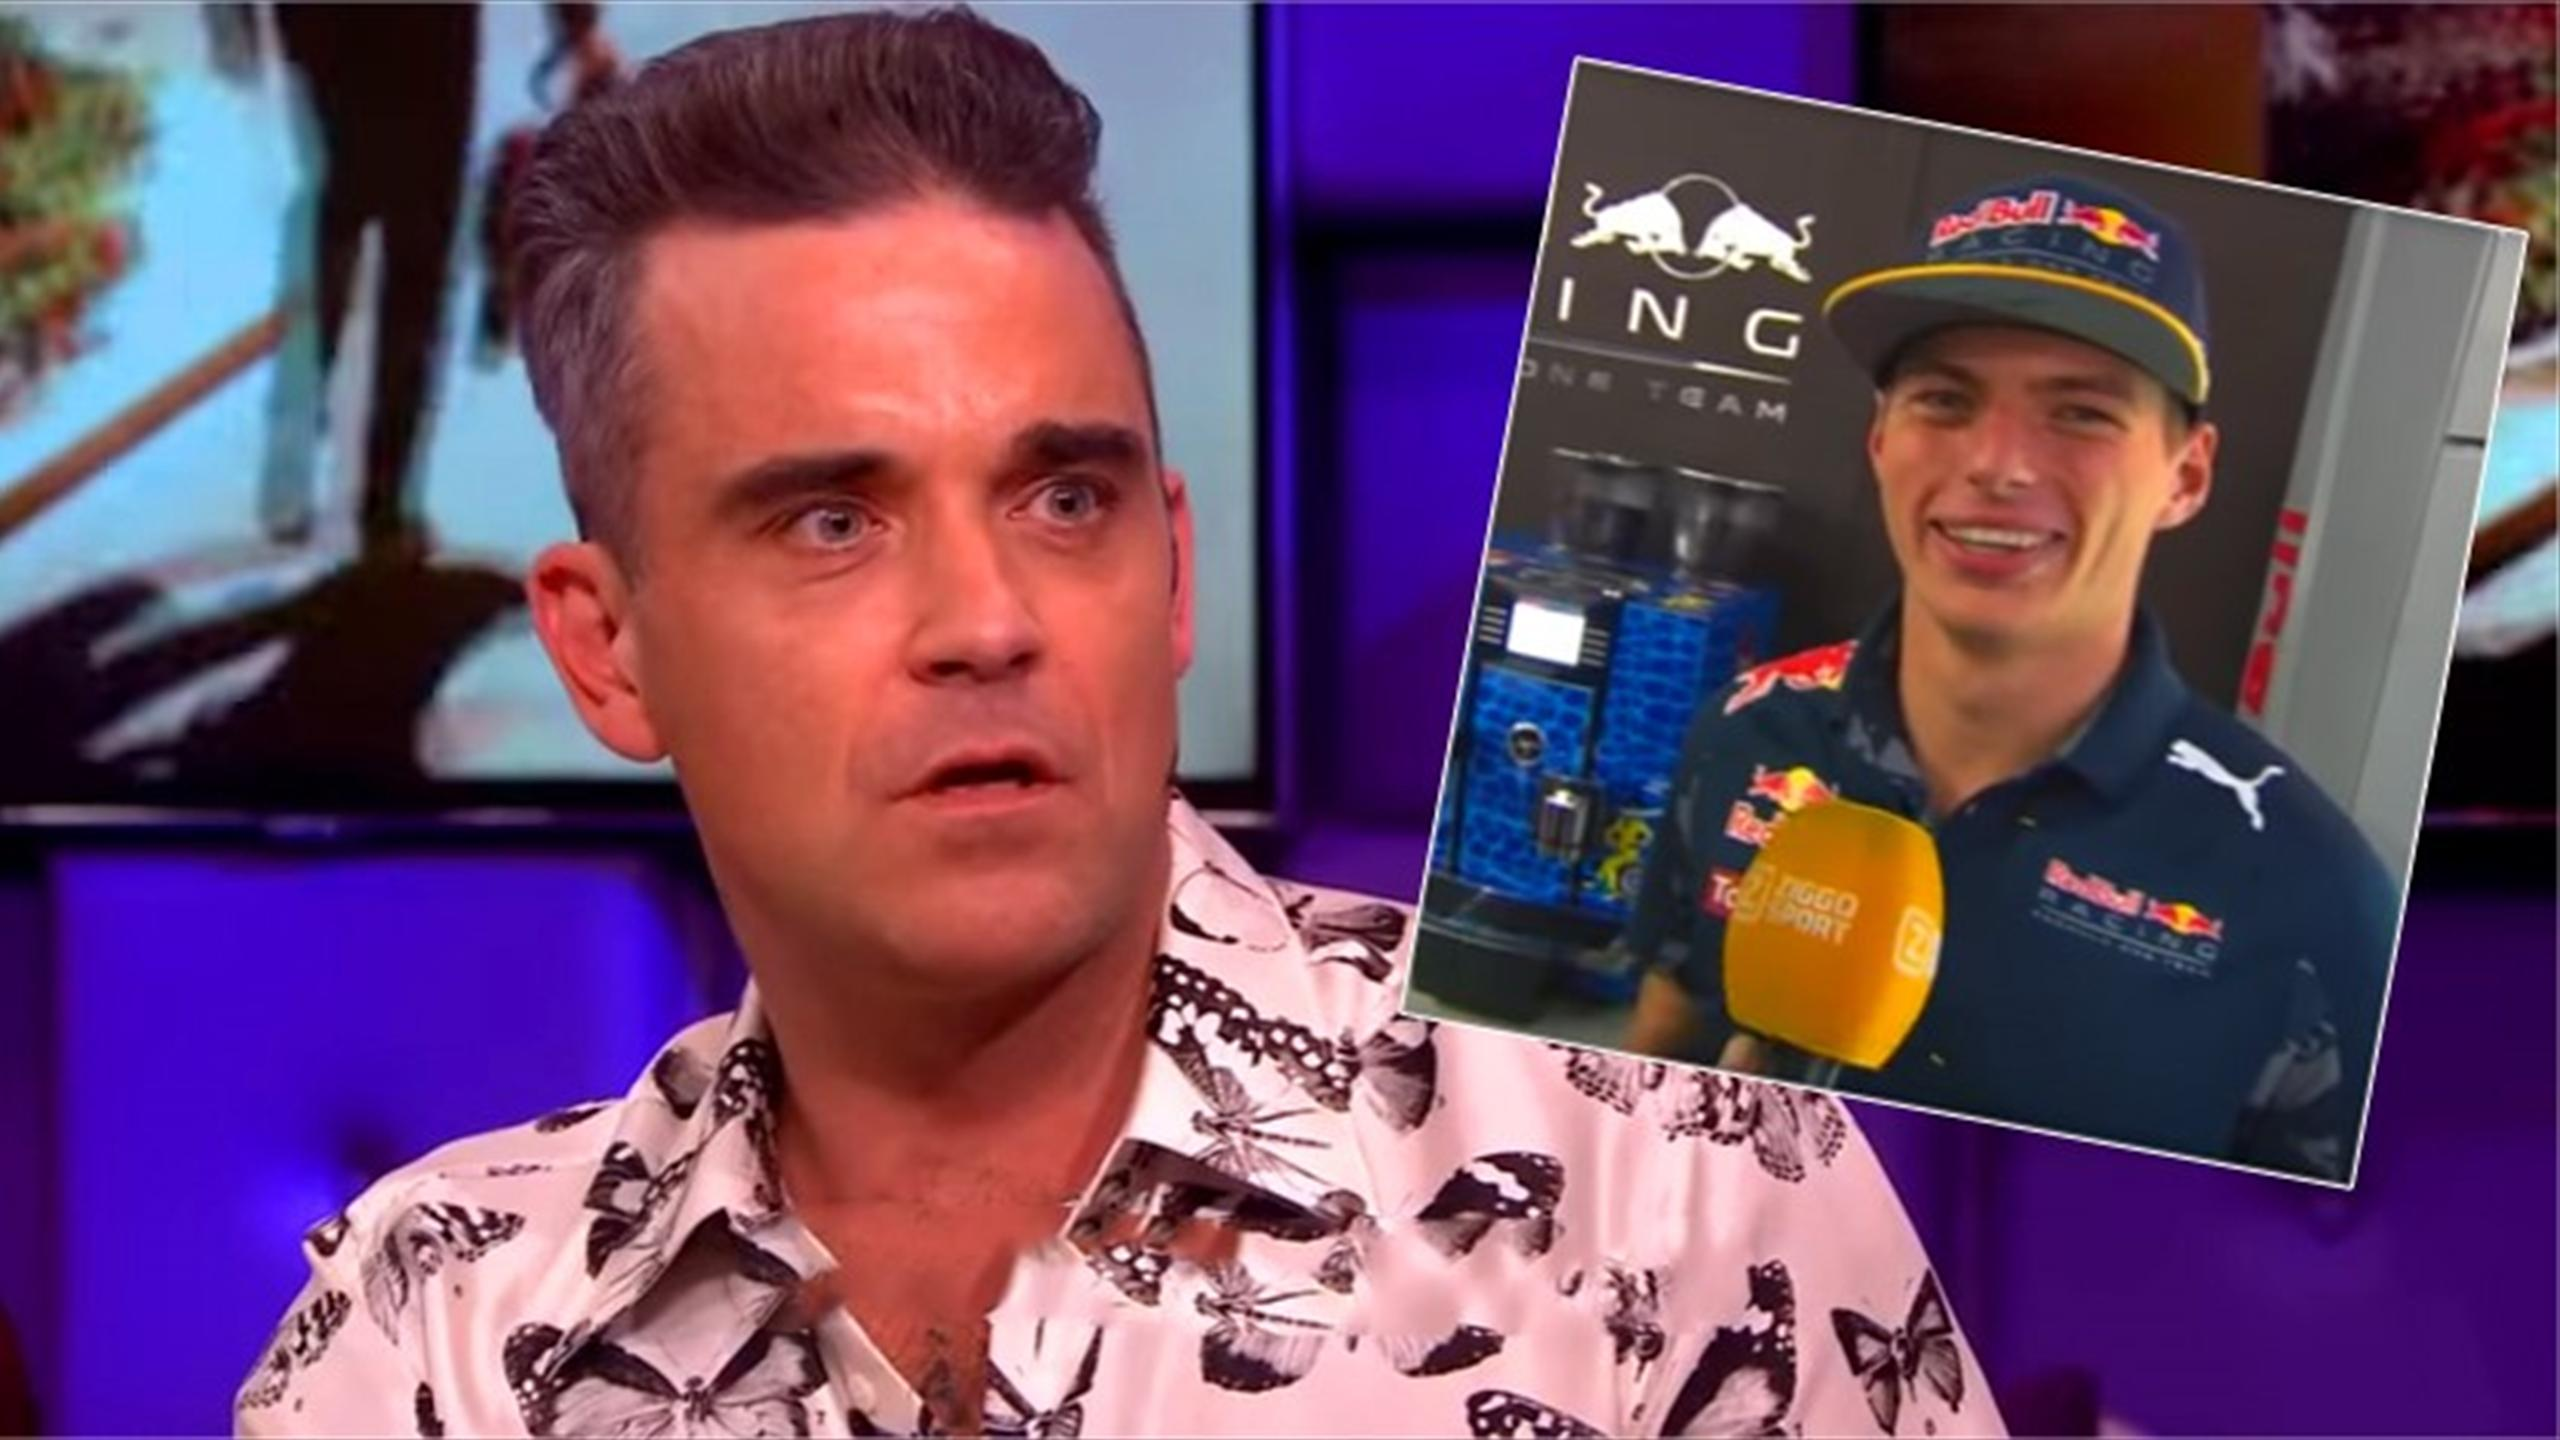 Pop star Robbie Williams gets very awkward proposal from F1's Max Verstappen (Youtube)